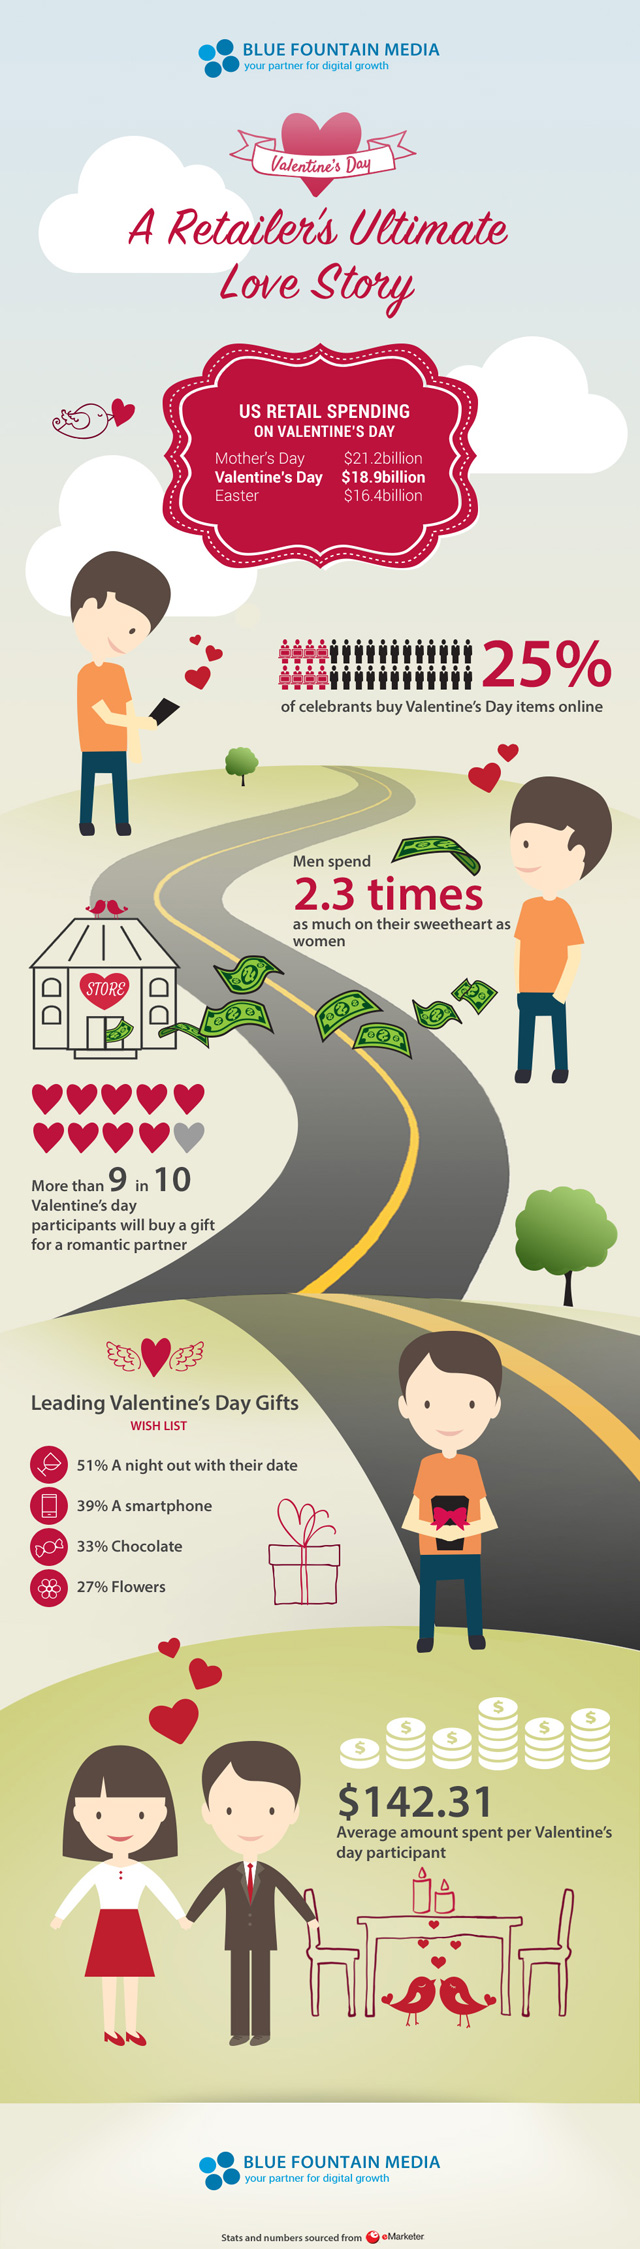 Valentine's Day Marketing: A Retailer's Ultimately Love Story